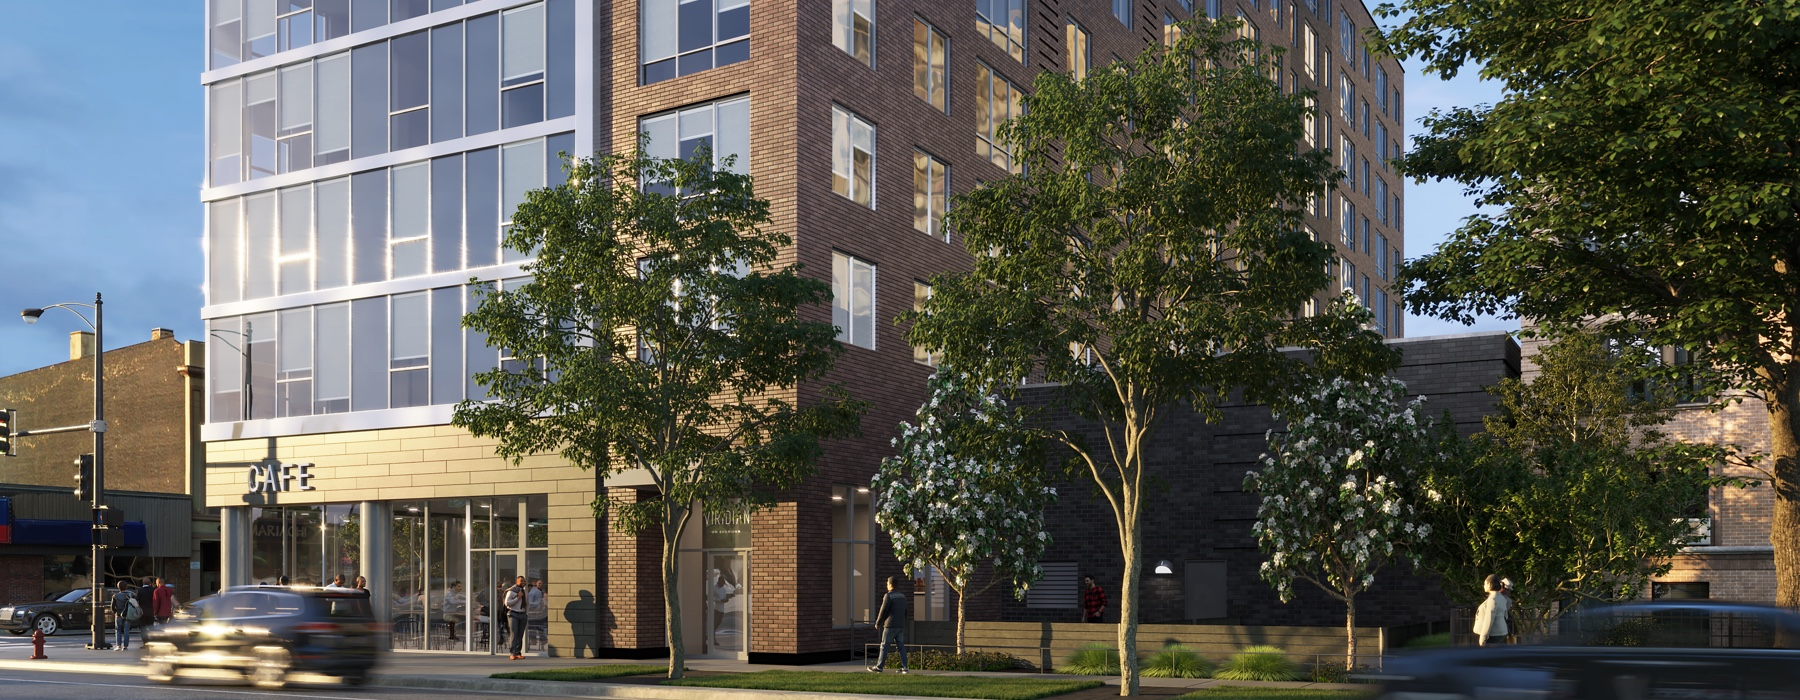 Veridian luxury residential building in Chicago IL